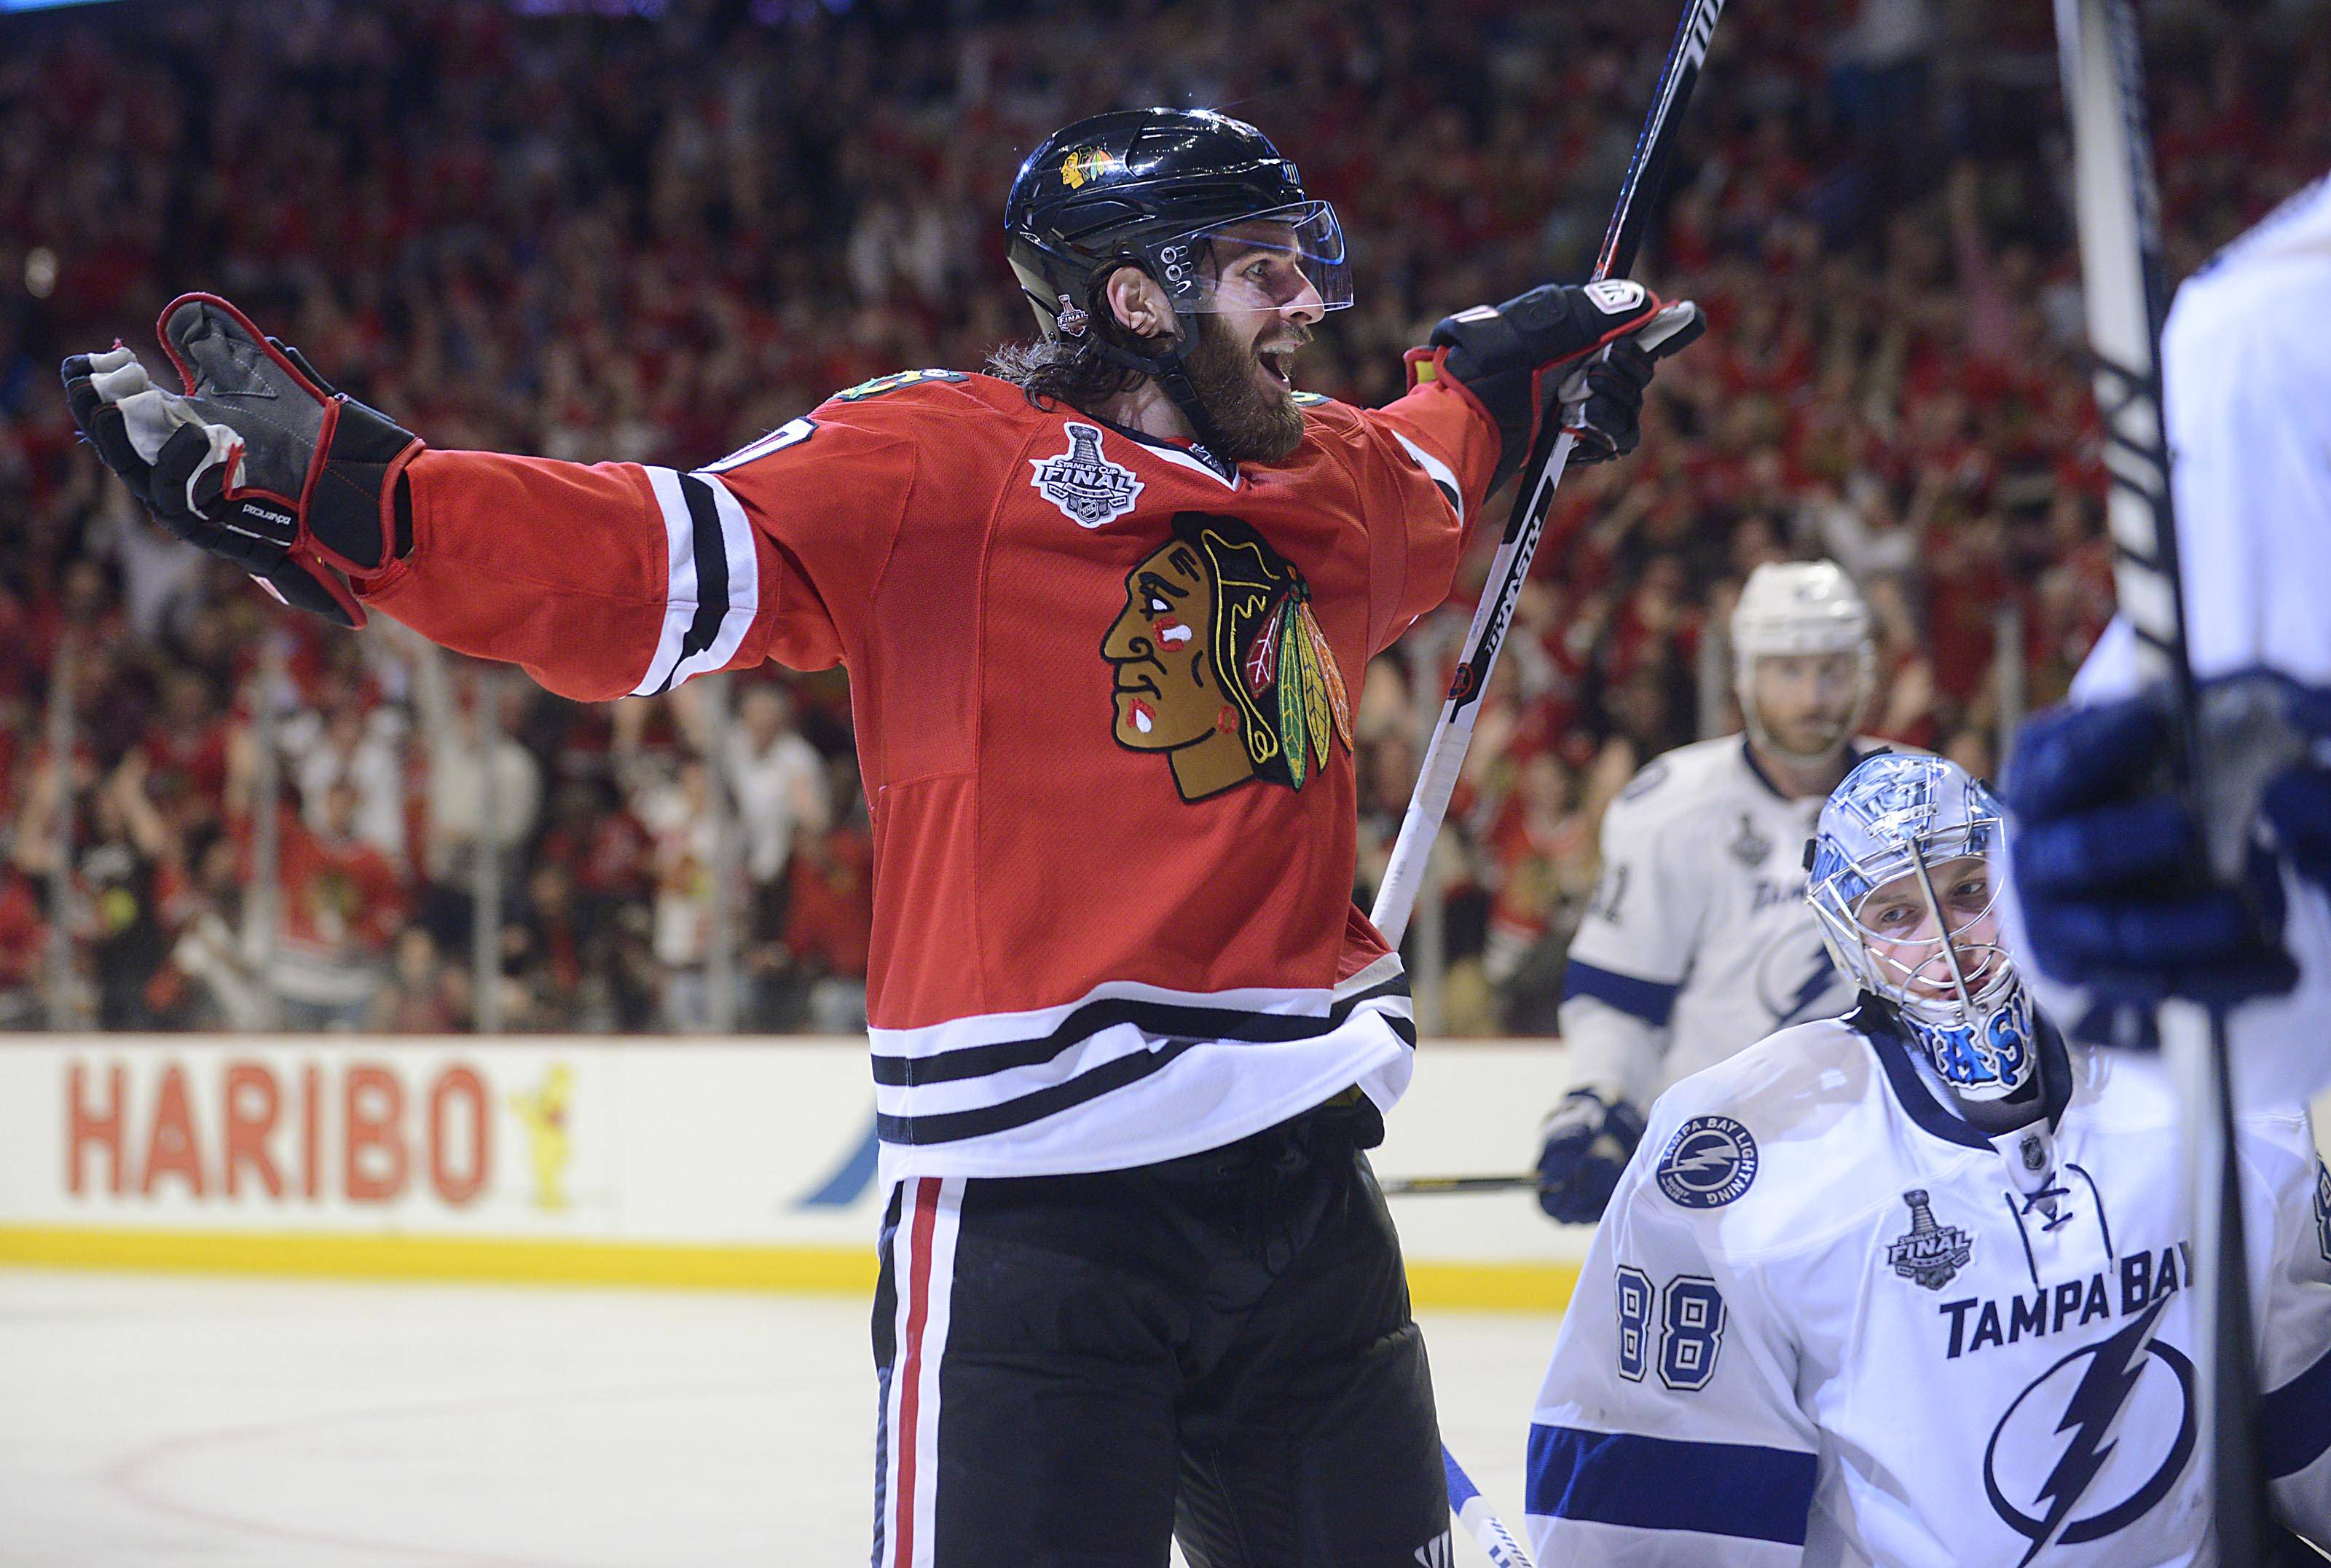 Chicago Blackhawks left wing Brandon Saad celebrates his game-winning goal in Game 4 of the Stanley Cup Finals in 2015. Saad spent two years away from Chicago, but is back and had quite a homecoming on Thursday, when he recorded a hat trick.